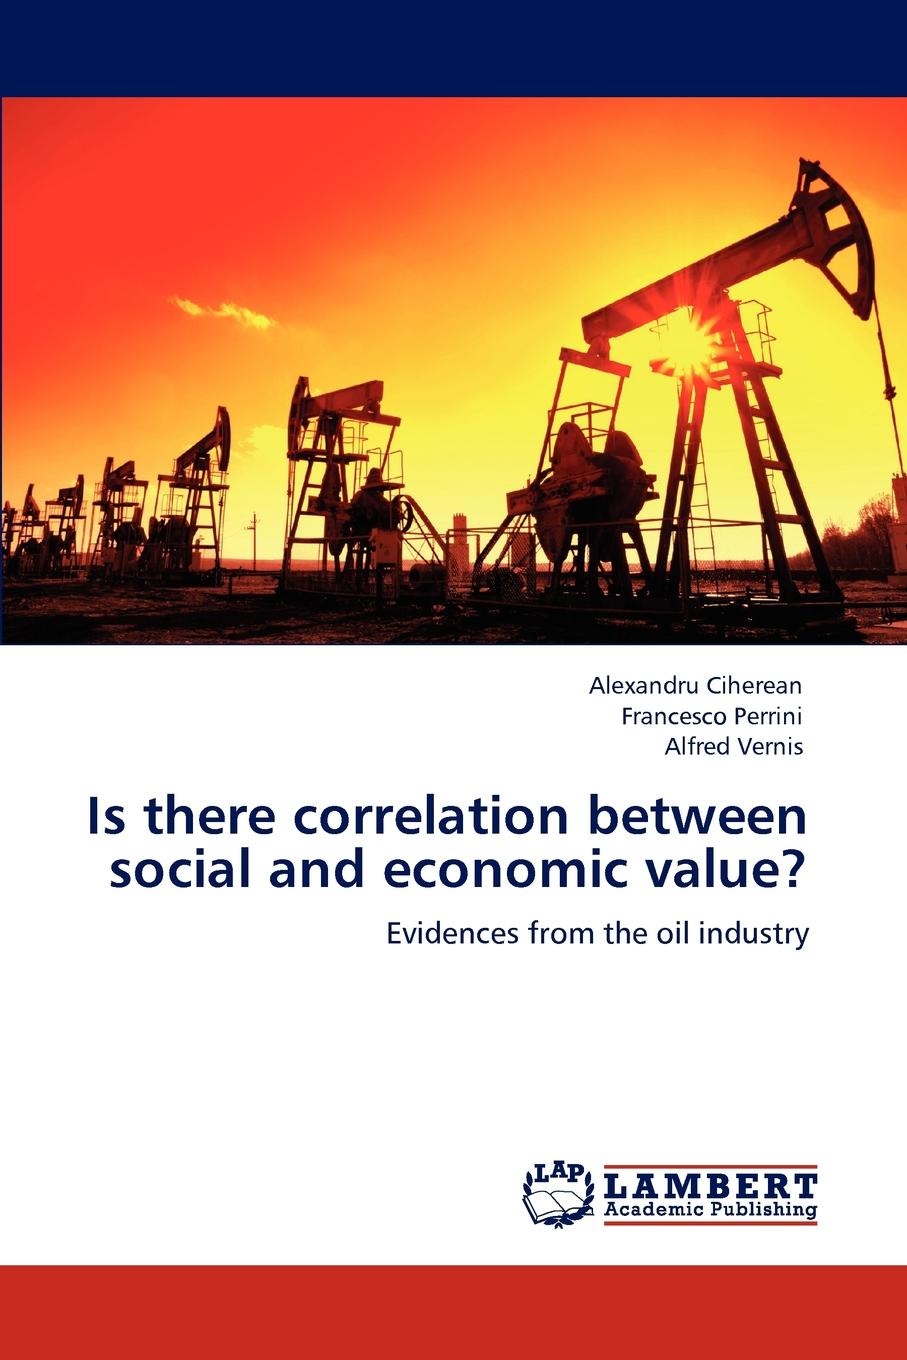 Alexandru Ciherean, Francesco Perrini, Alfred Vernis Is there correlation between social and economic value. william roberts the correlation between crime rates and weather patterns in northern brooklyn during 2012